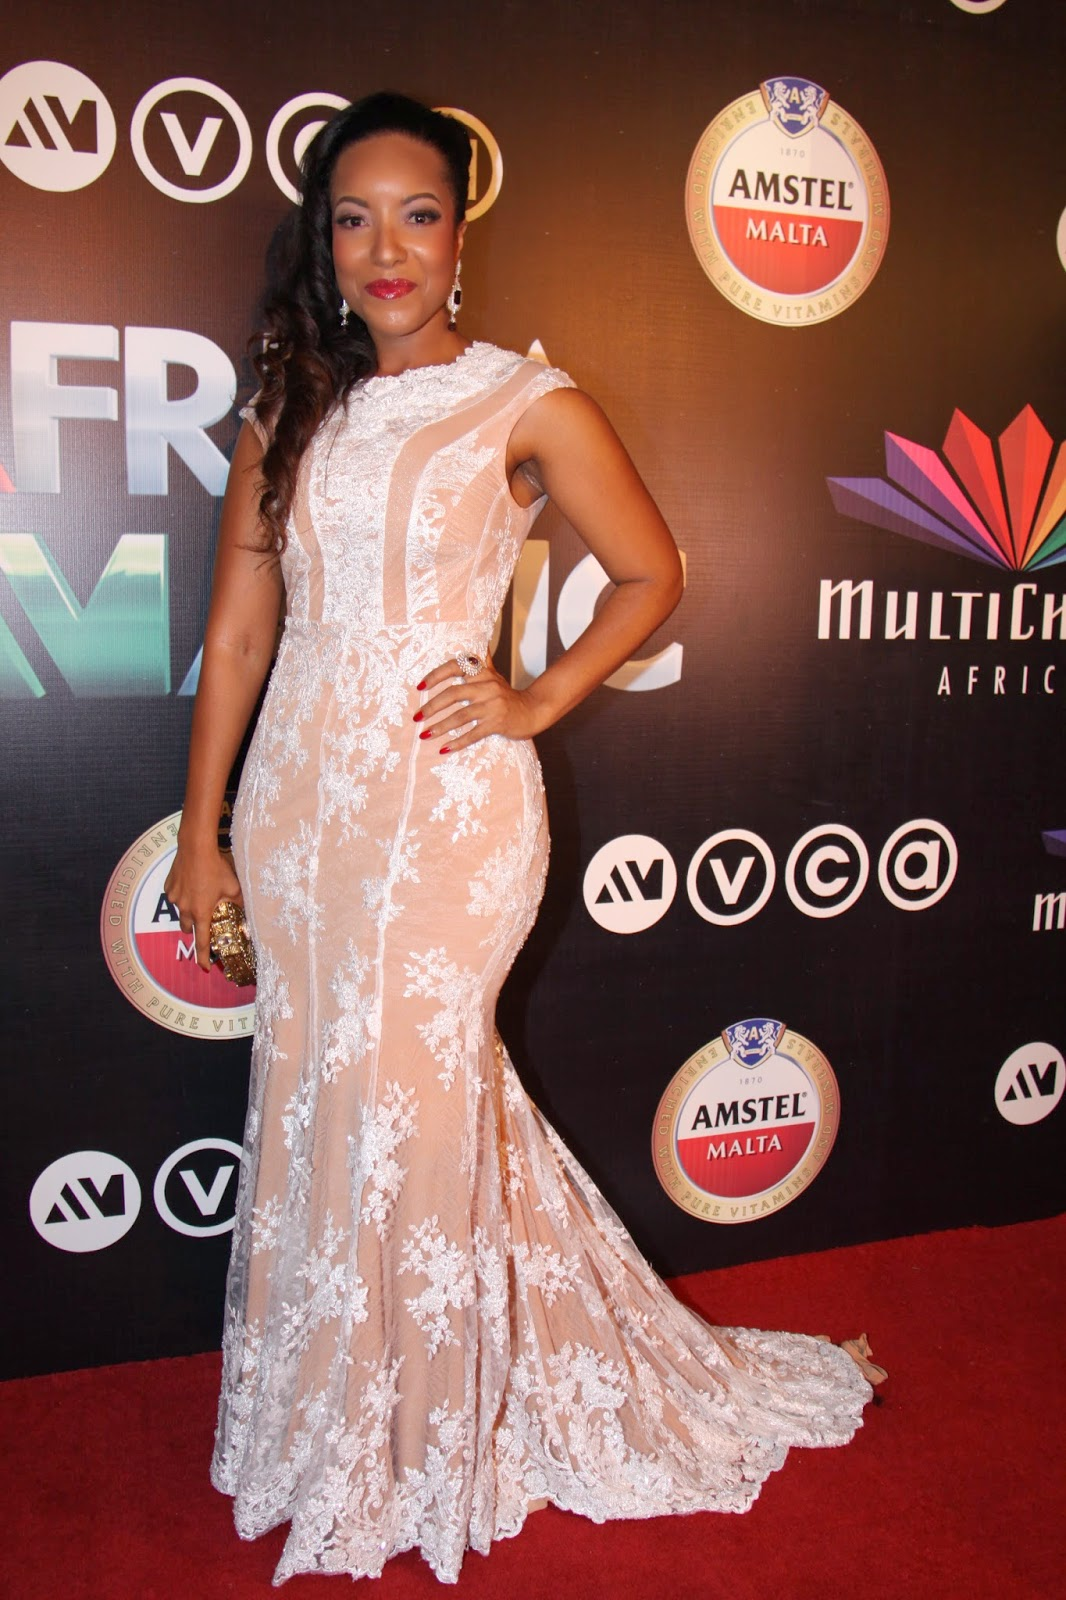 All the Glitz & Glam: Official photos from 2014 AMVCAs